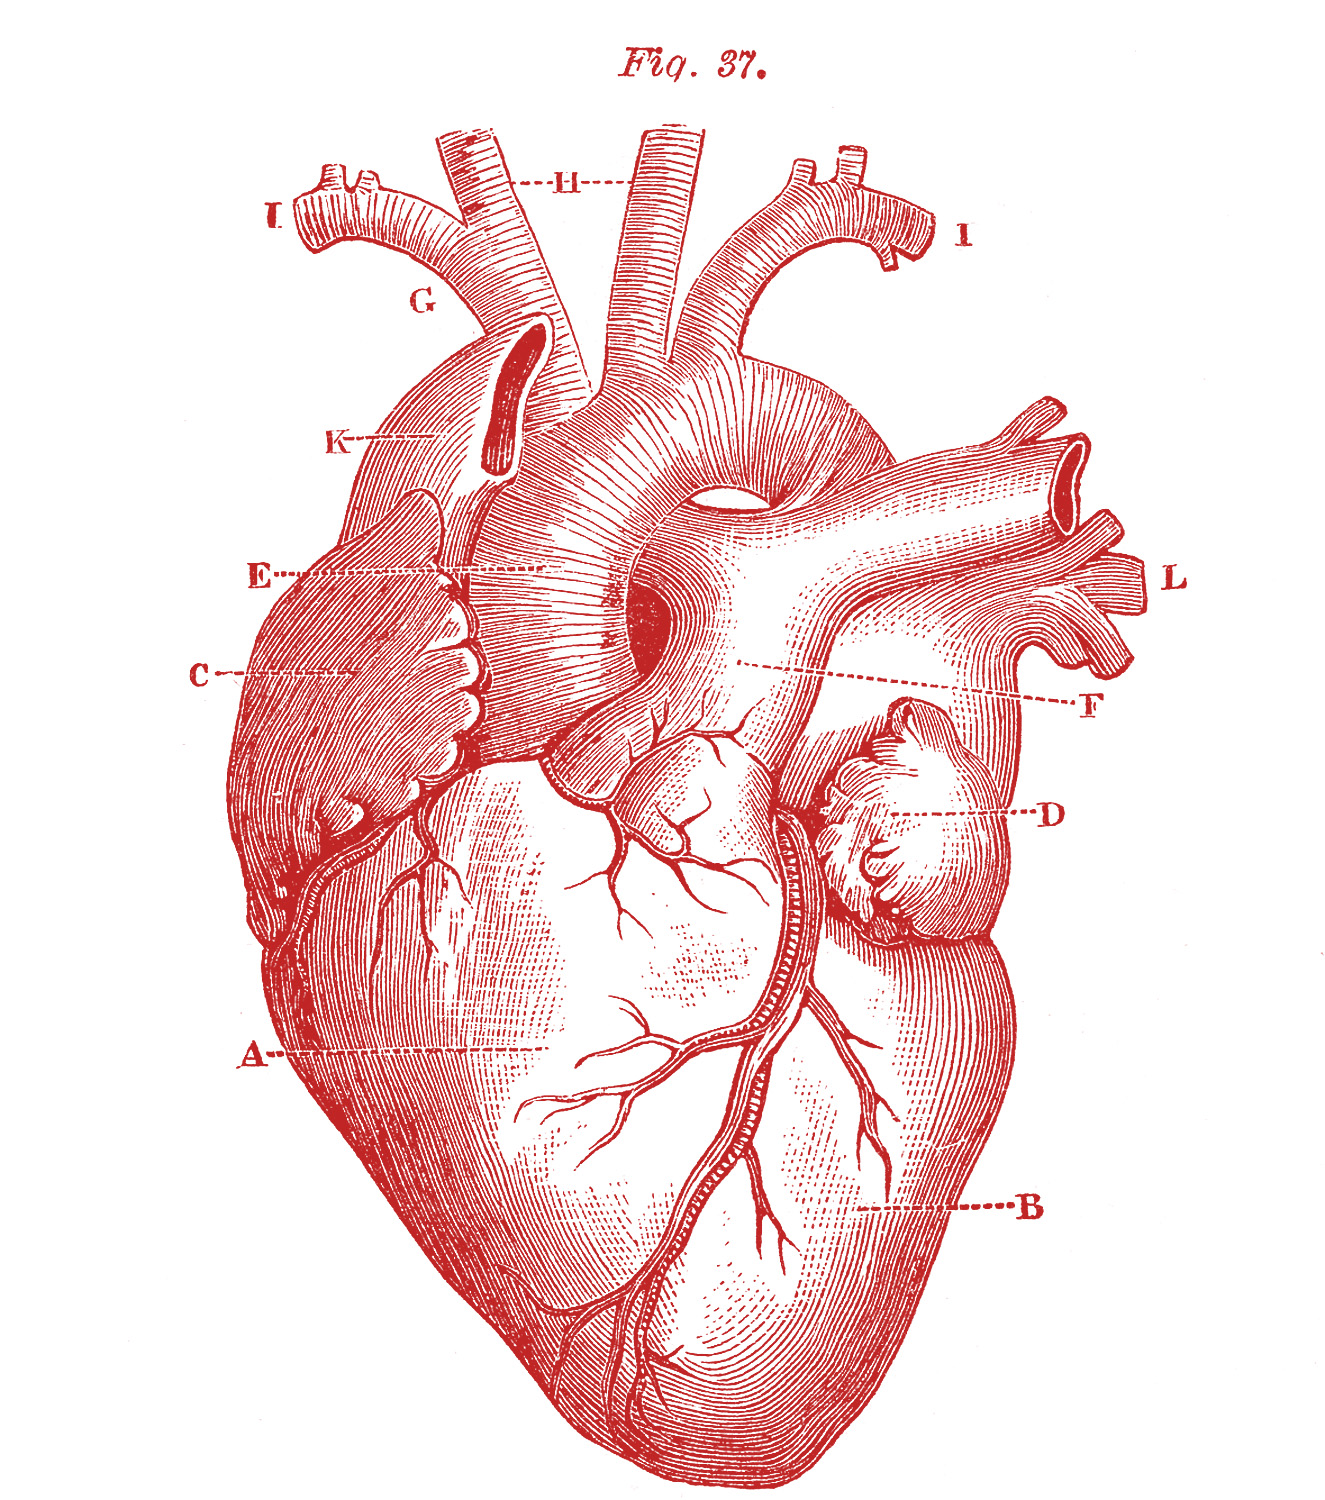 Human heart anatomy vintage - photo#26